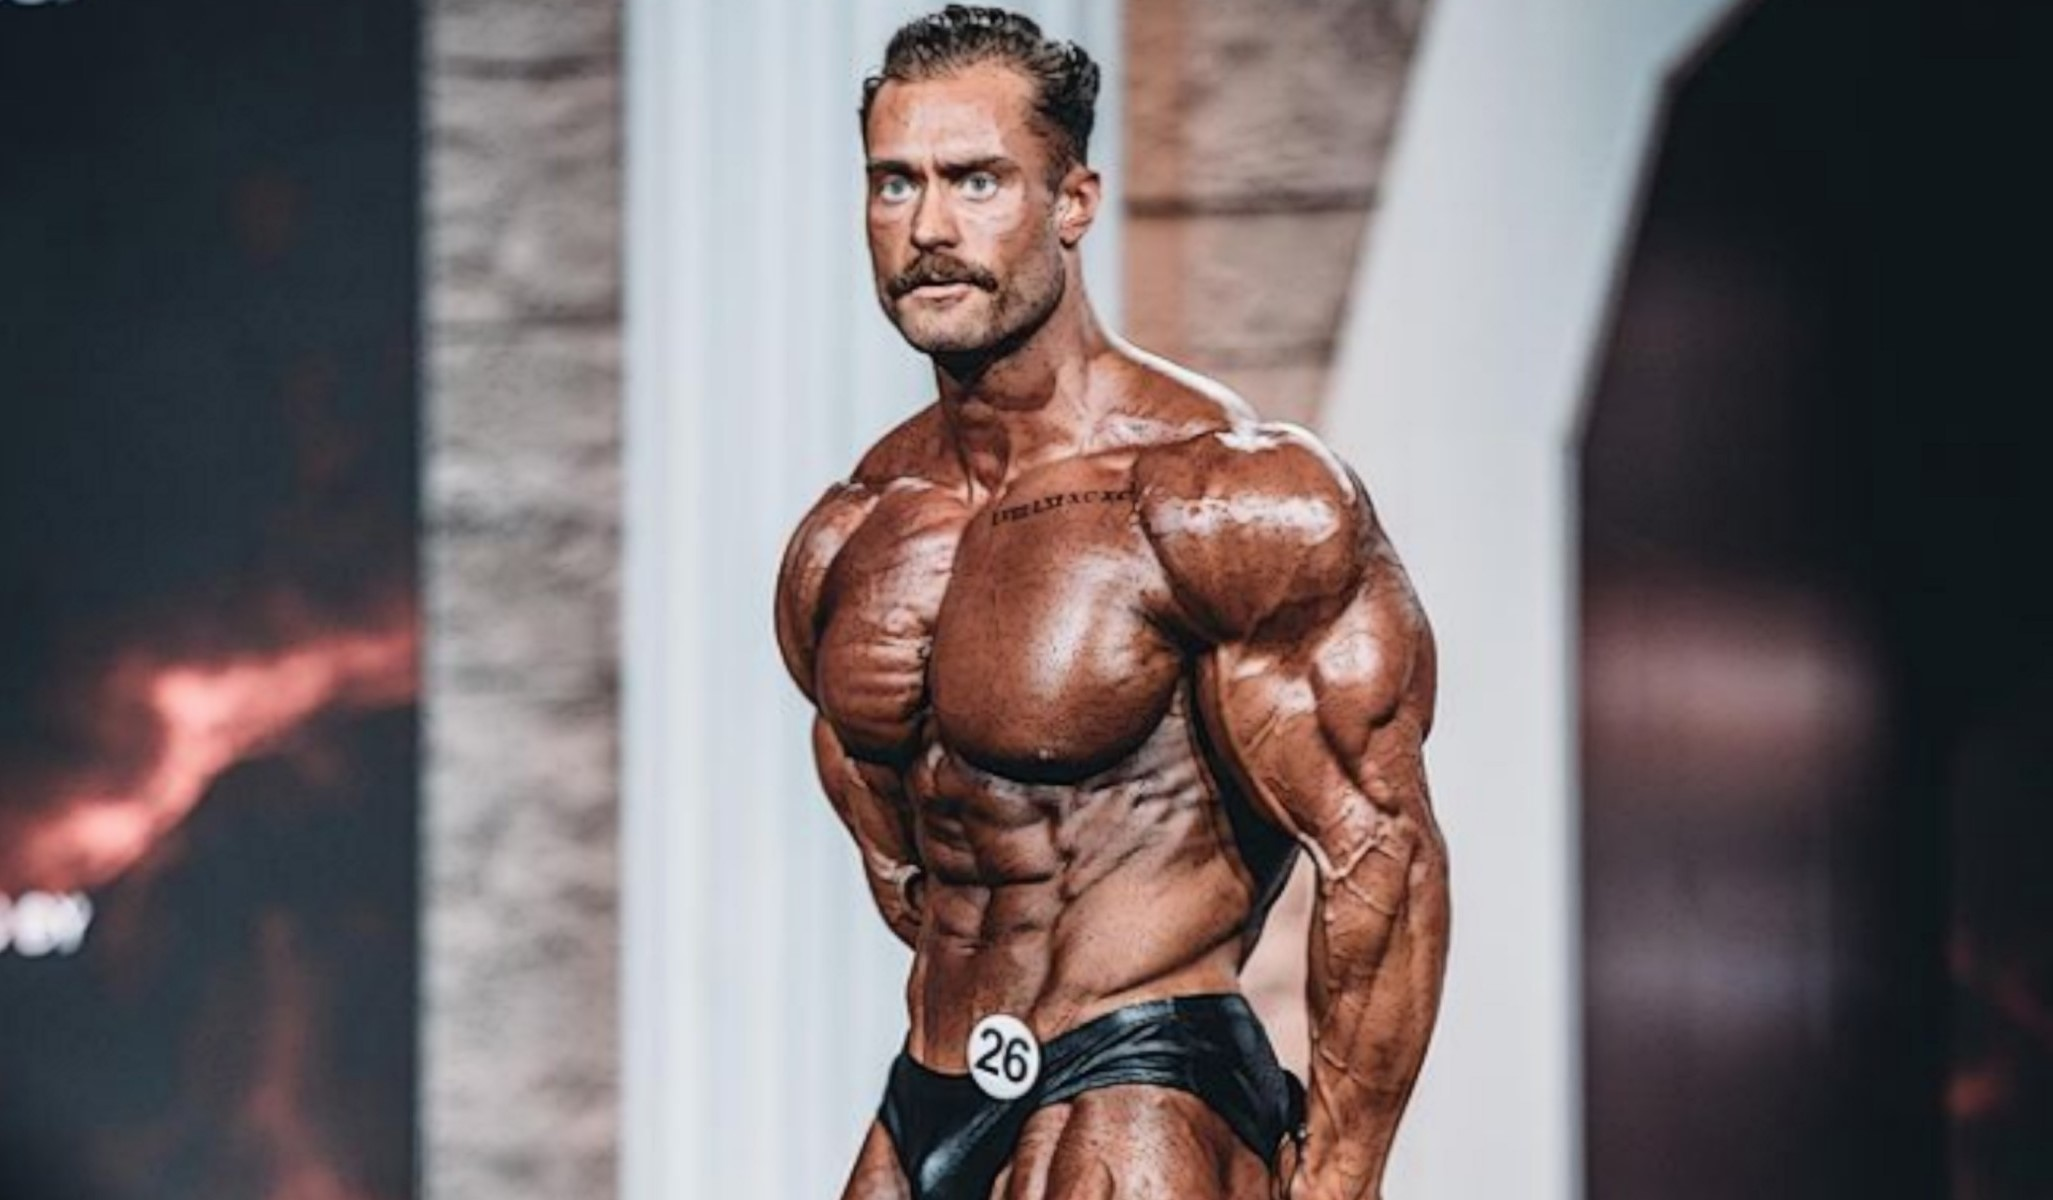 Chris Bumstead Gives Answer On Whether or Not to Use Steroids